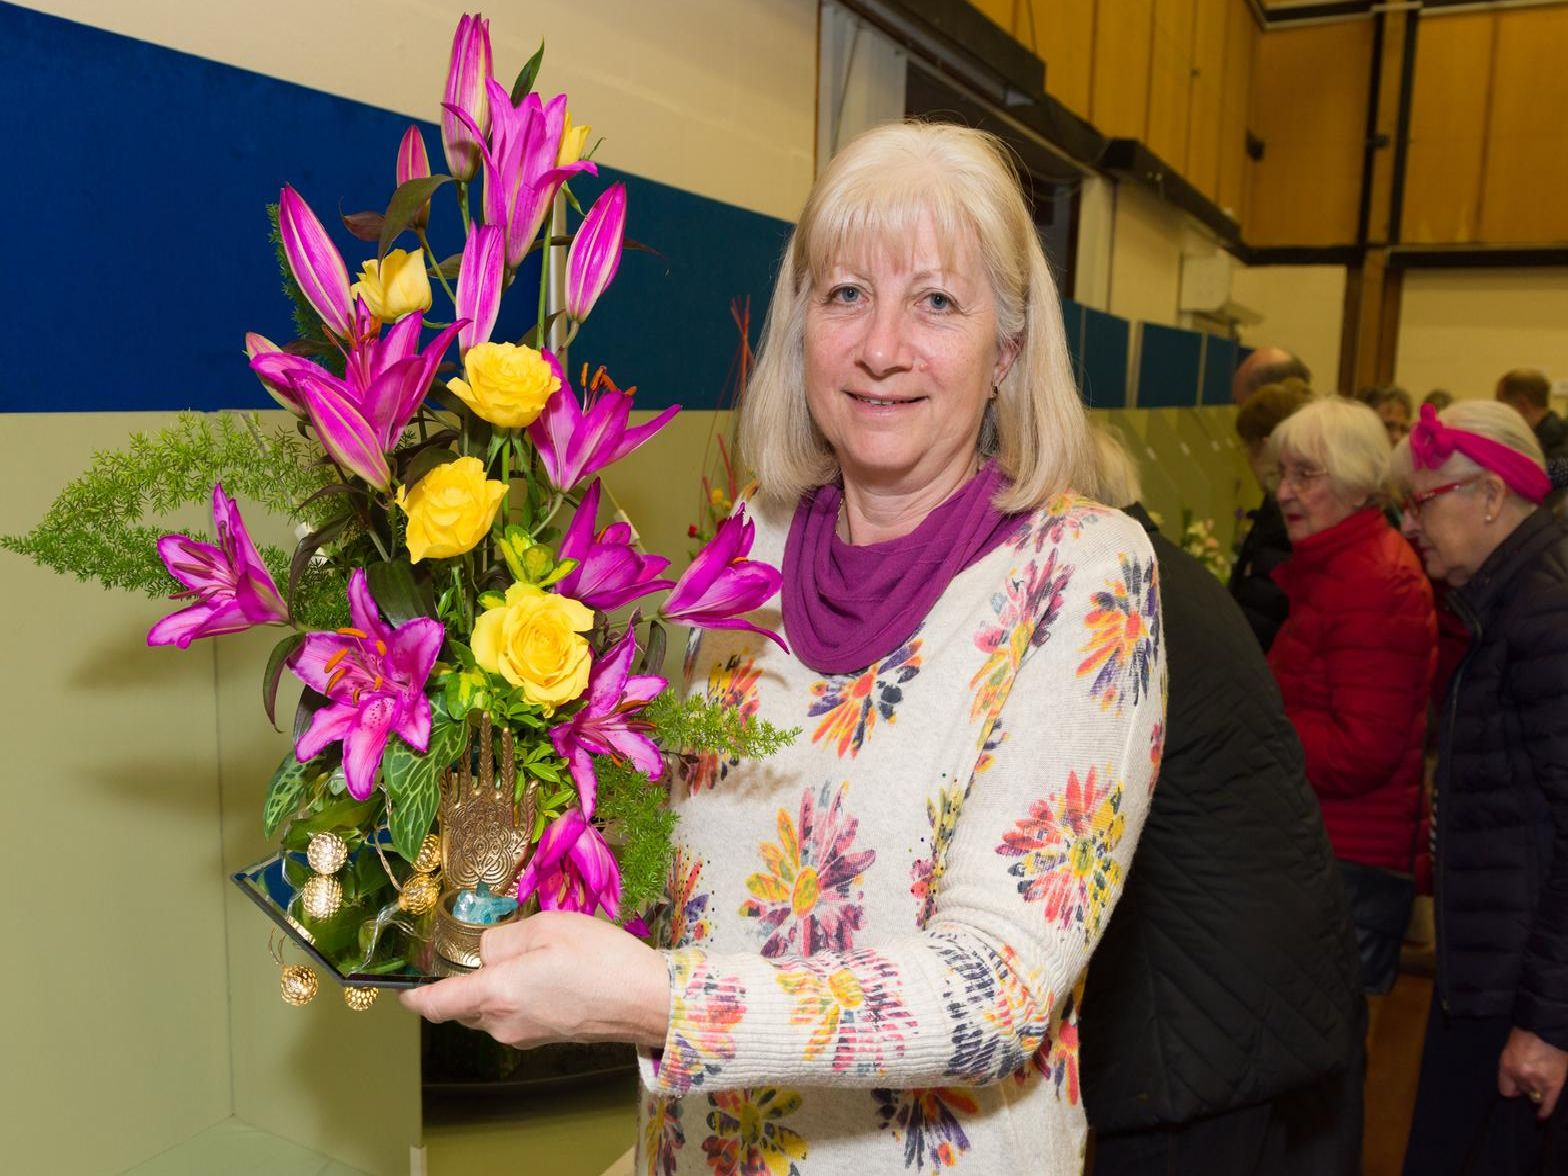 The Hayling Island Horticultural Society has more than 800 numbers and is gearing up to put on its Spring Show for 2019.  Members create floral displays  enjoyed by visitors, and judged by Cllr Peter Wade, Mayor of Havant - Linda Jones, new chairman of Hayling Flower club awarded 1st prize in the 'Eastern Promise' category of the floral art exhibit competition. Picture: Duncan Shepherd